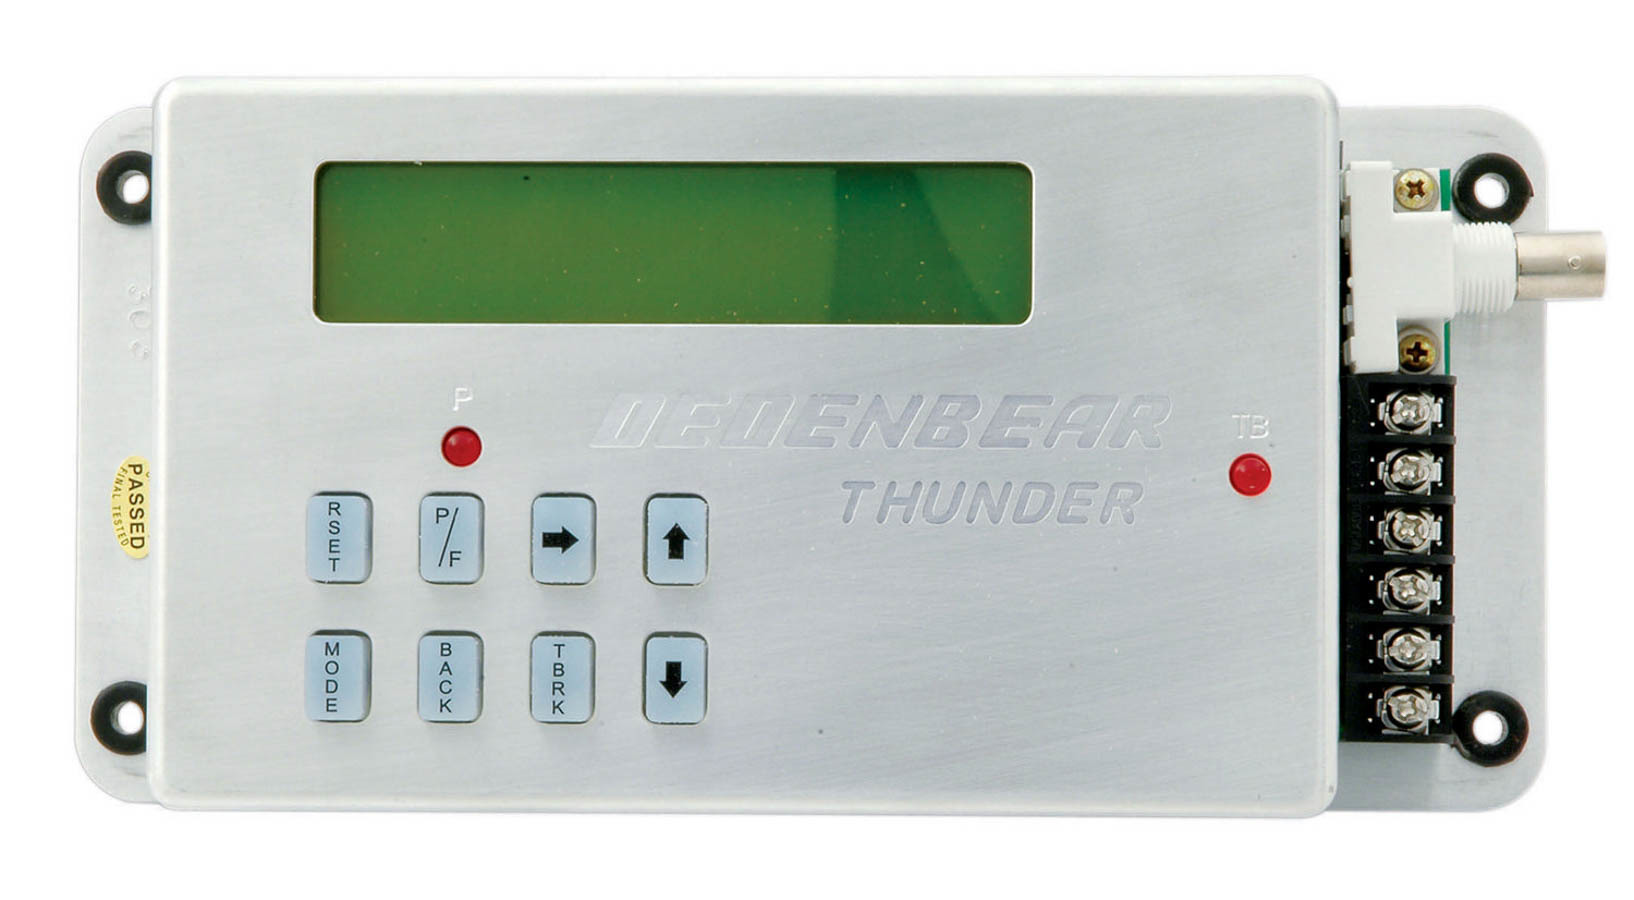 Dedenbear T1 Delay Box, Thunder, Digital, Illuminated, Crossover Delay, Steel, Silver, Each